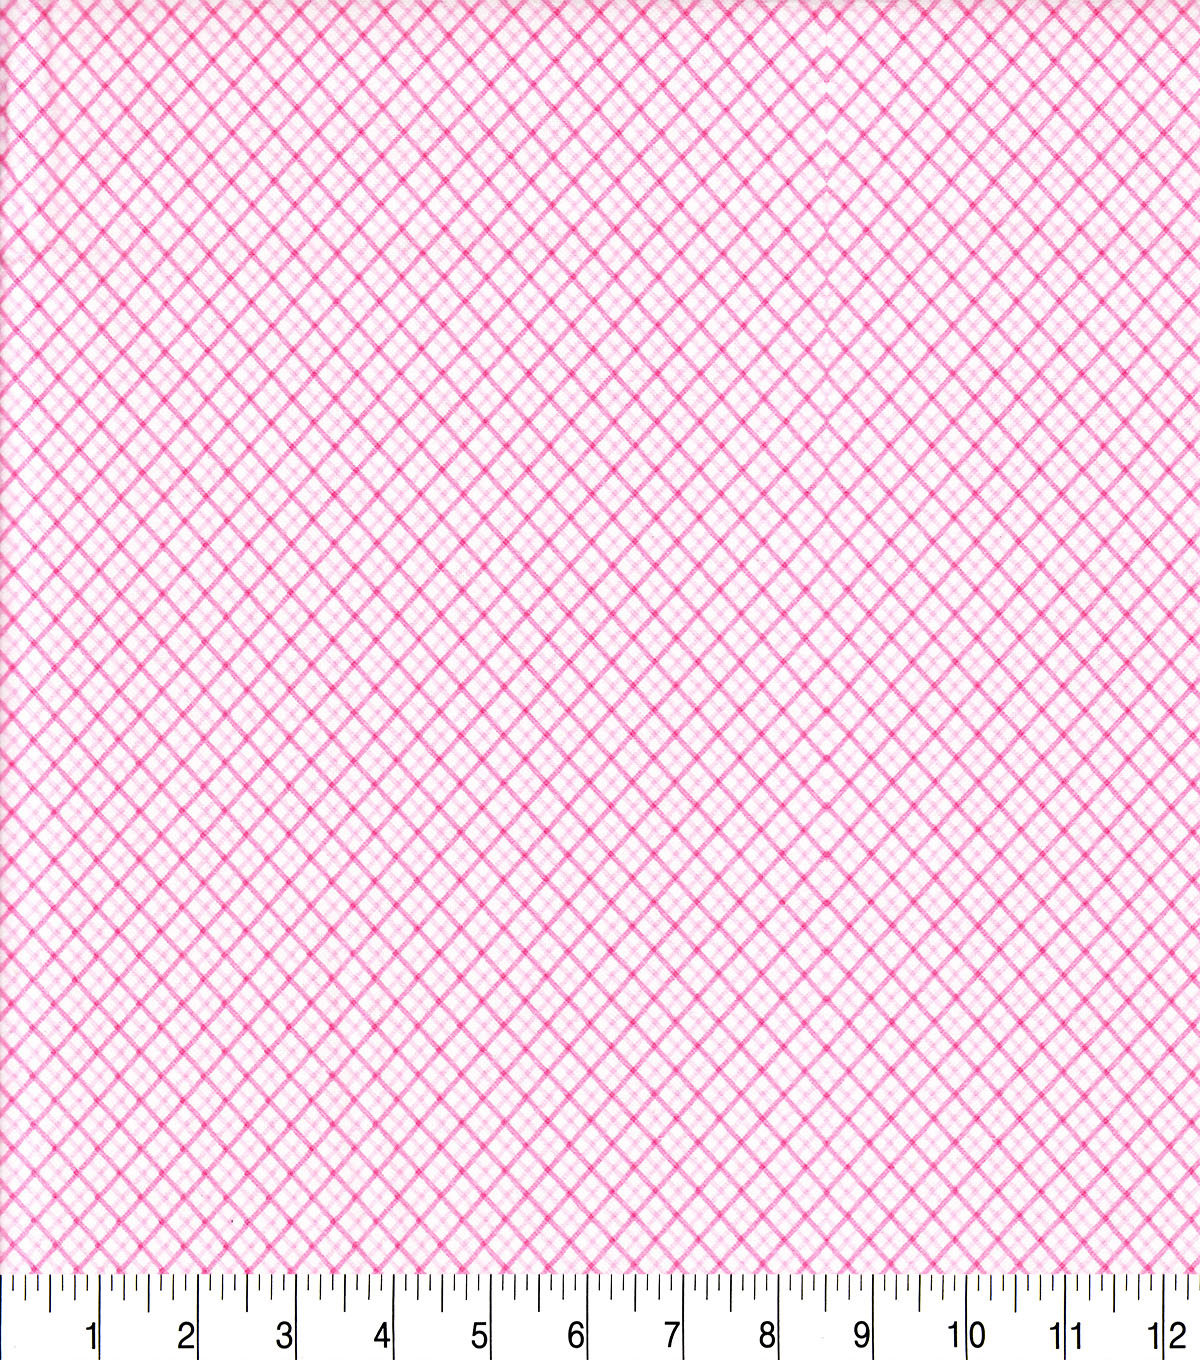 Snuggle Flannel Fabric -Pink Diagonal Plaid